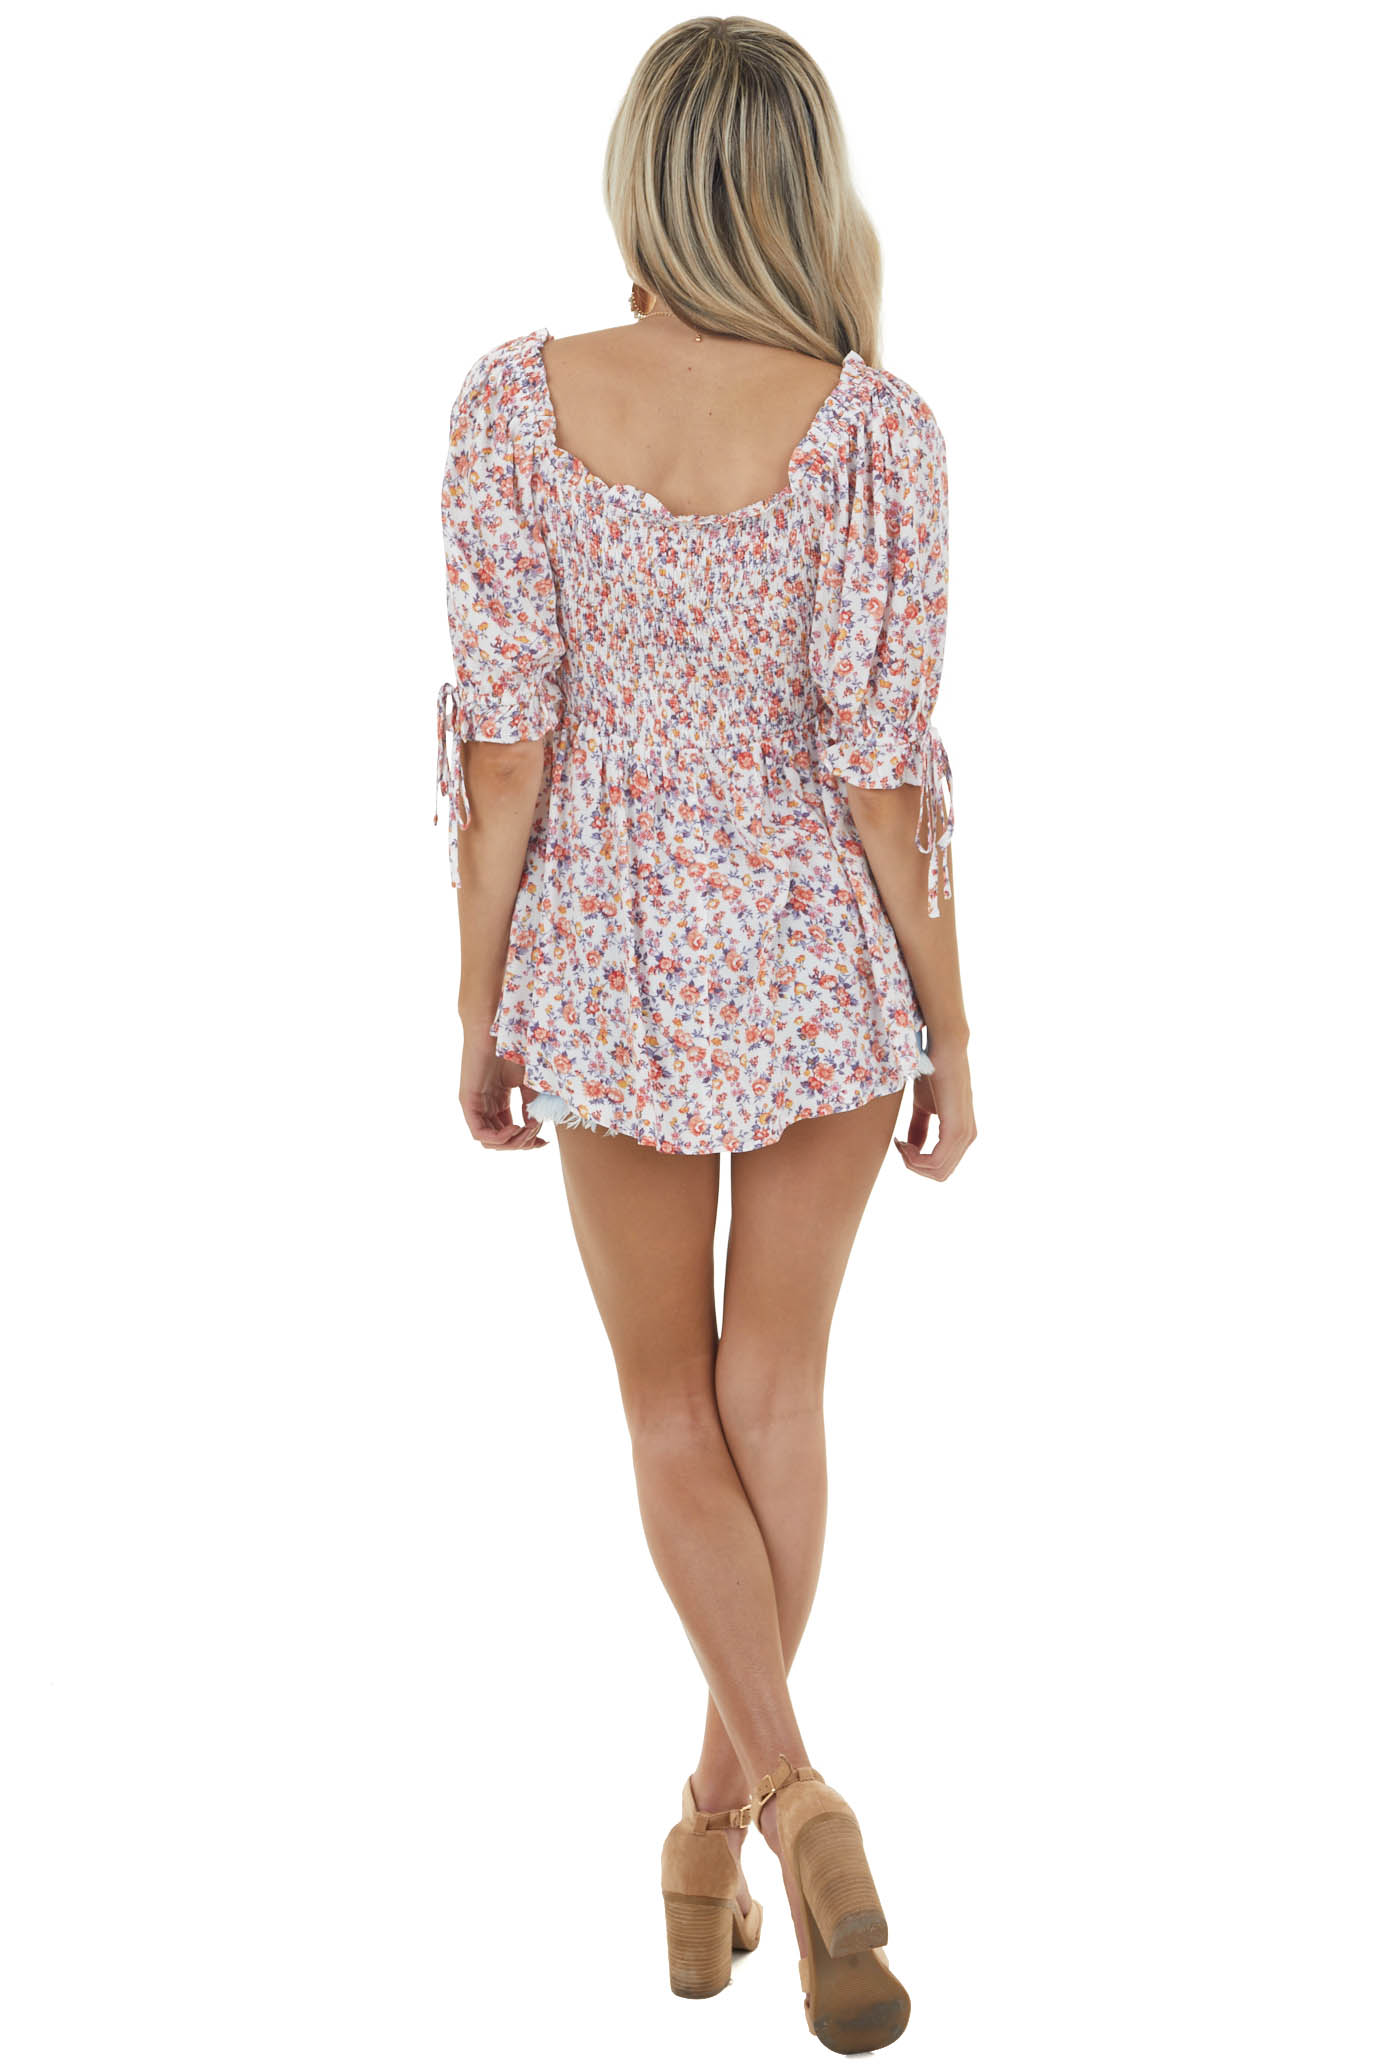 Off White Floral Print Smocked Blouse with Half Puff Sleeves